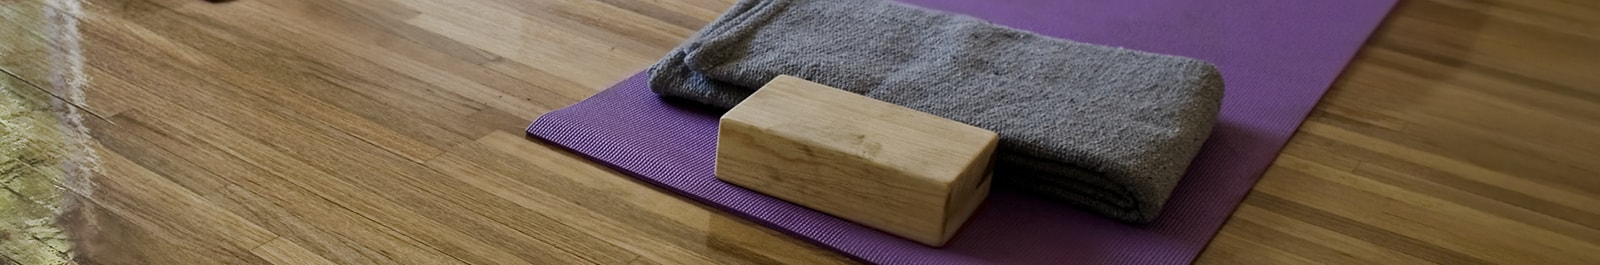 Wholesale yoga gear for yoga studios at Yoga Direct UK